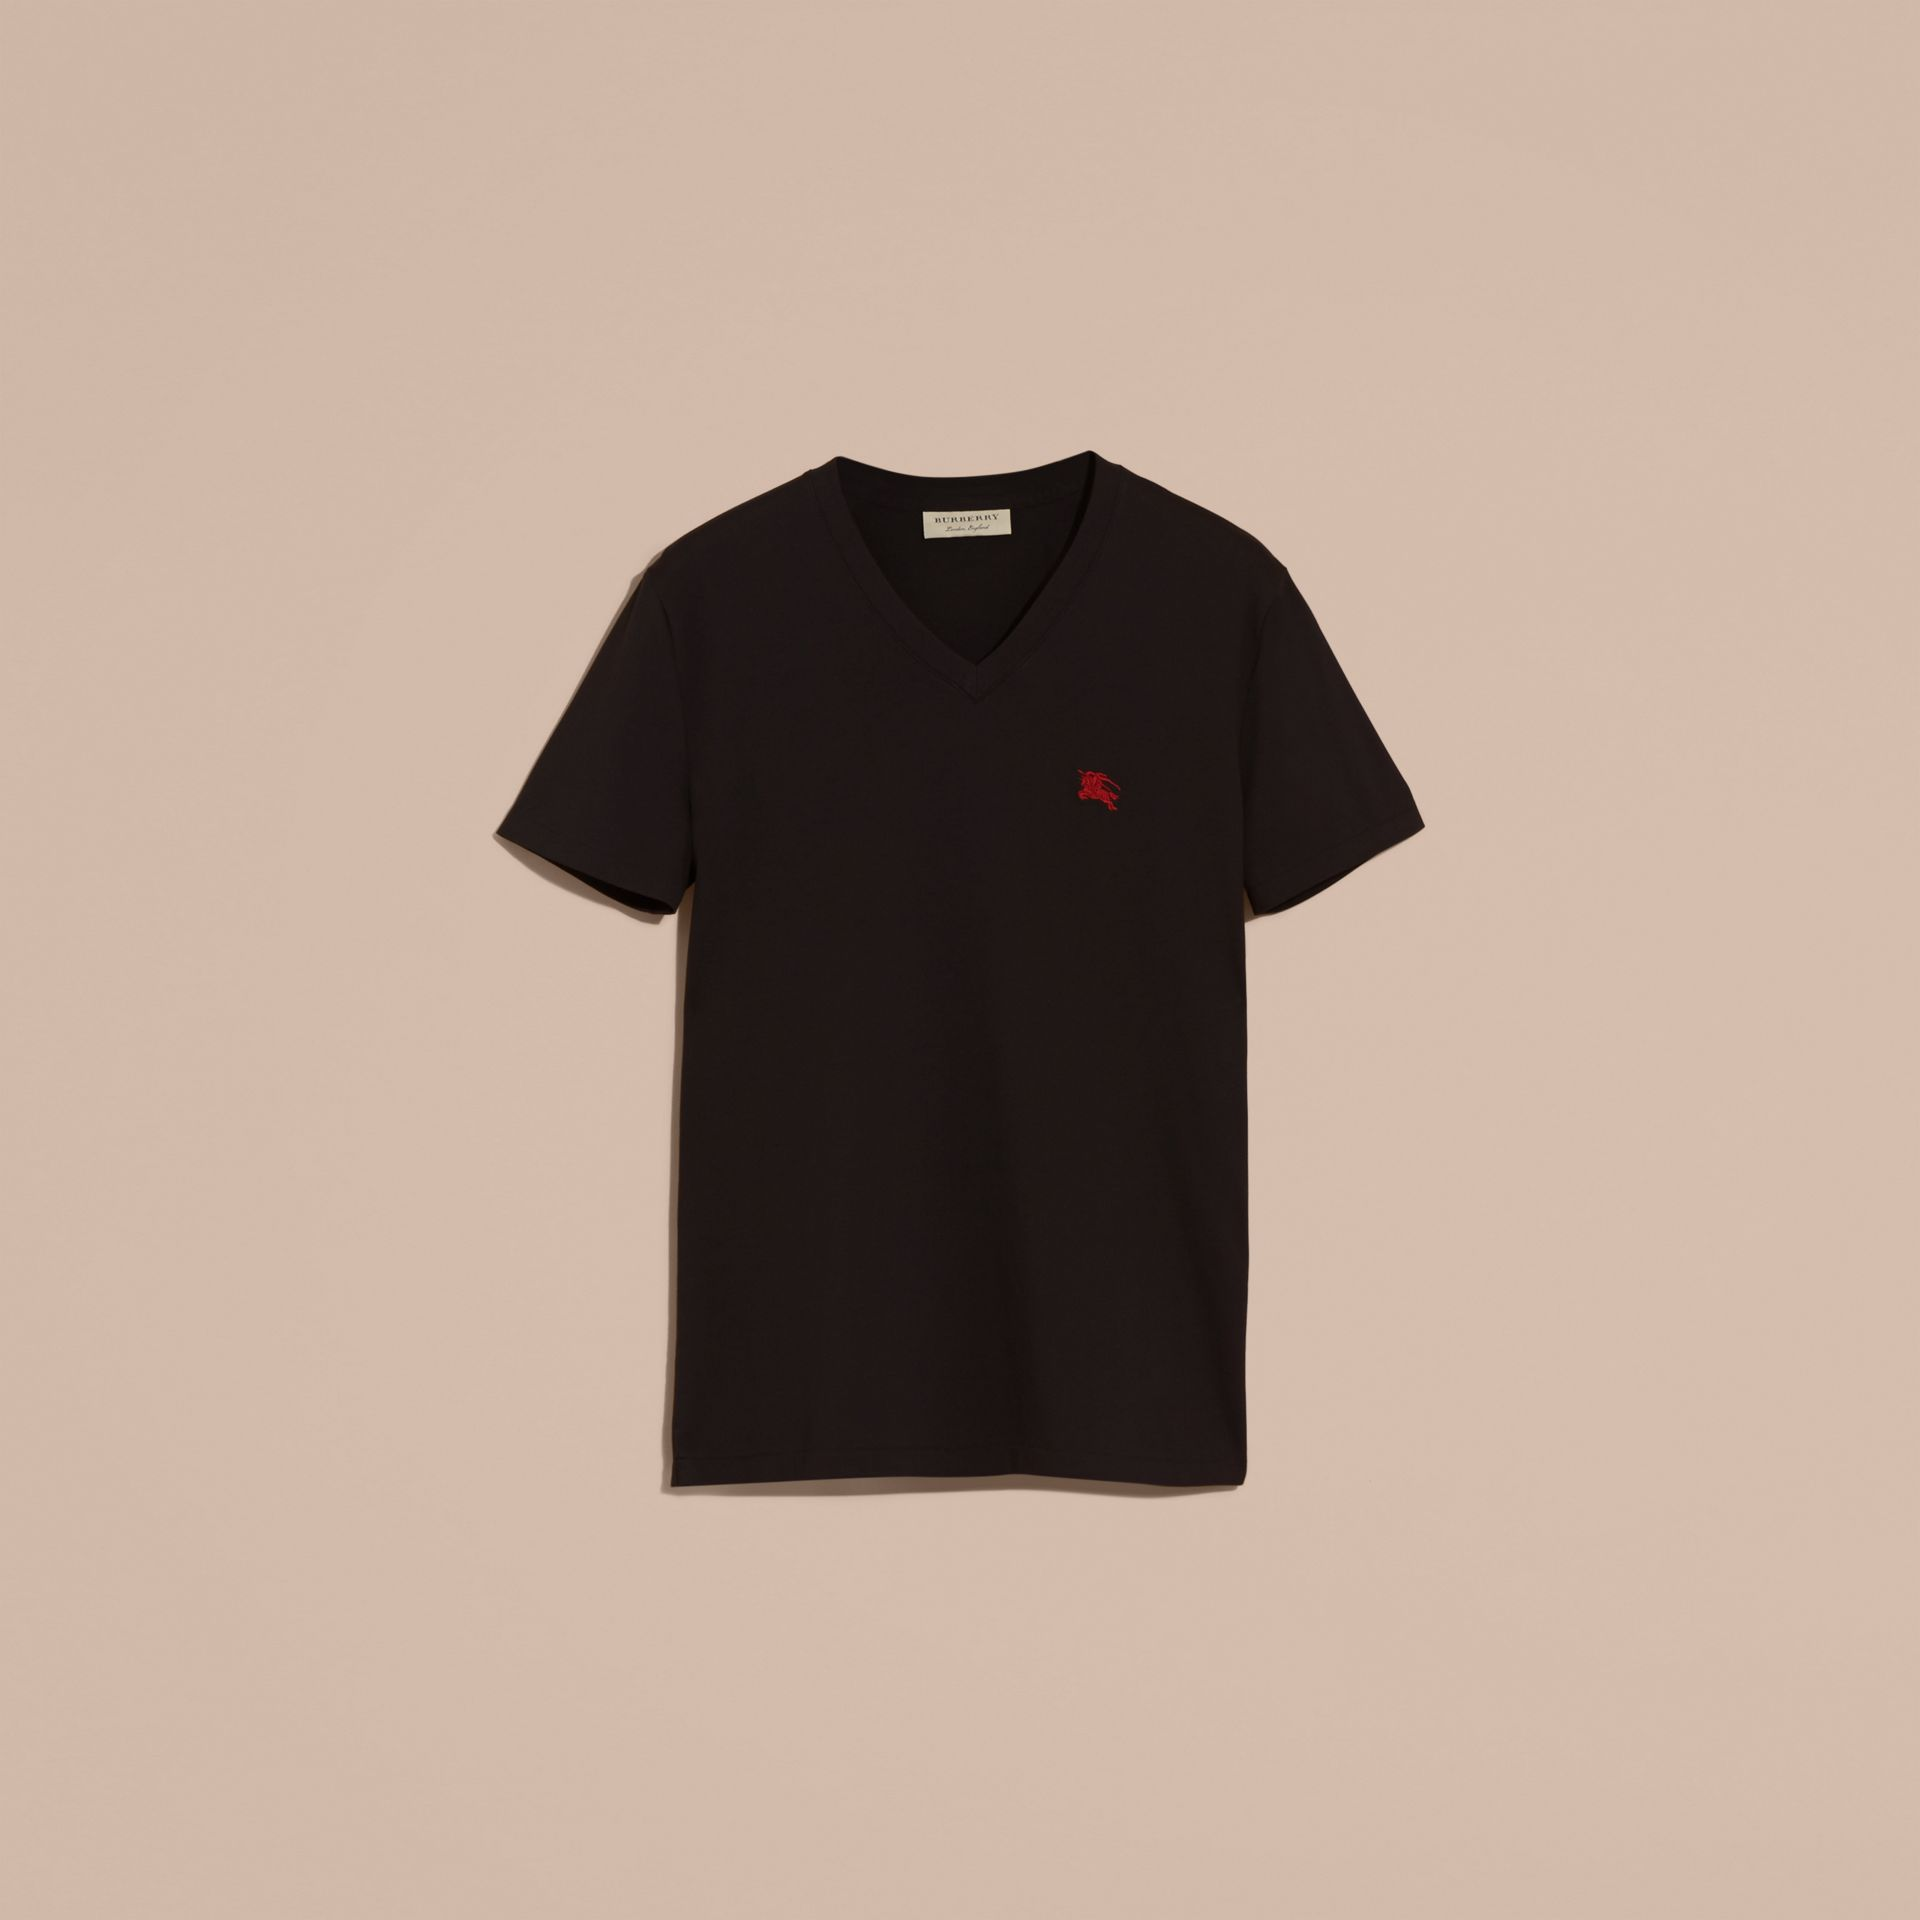 Cotton V-neck T-shirt in Black - Men | Burberry - gallery image 4